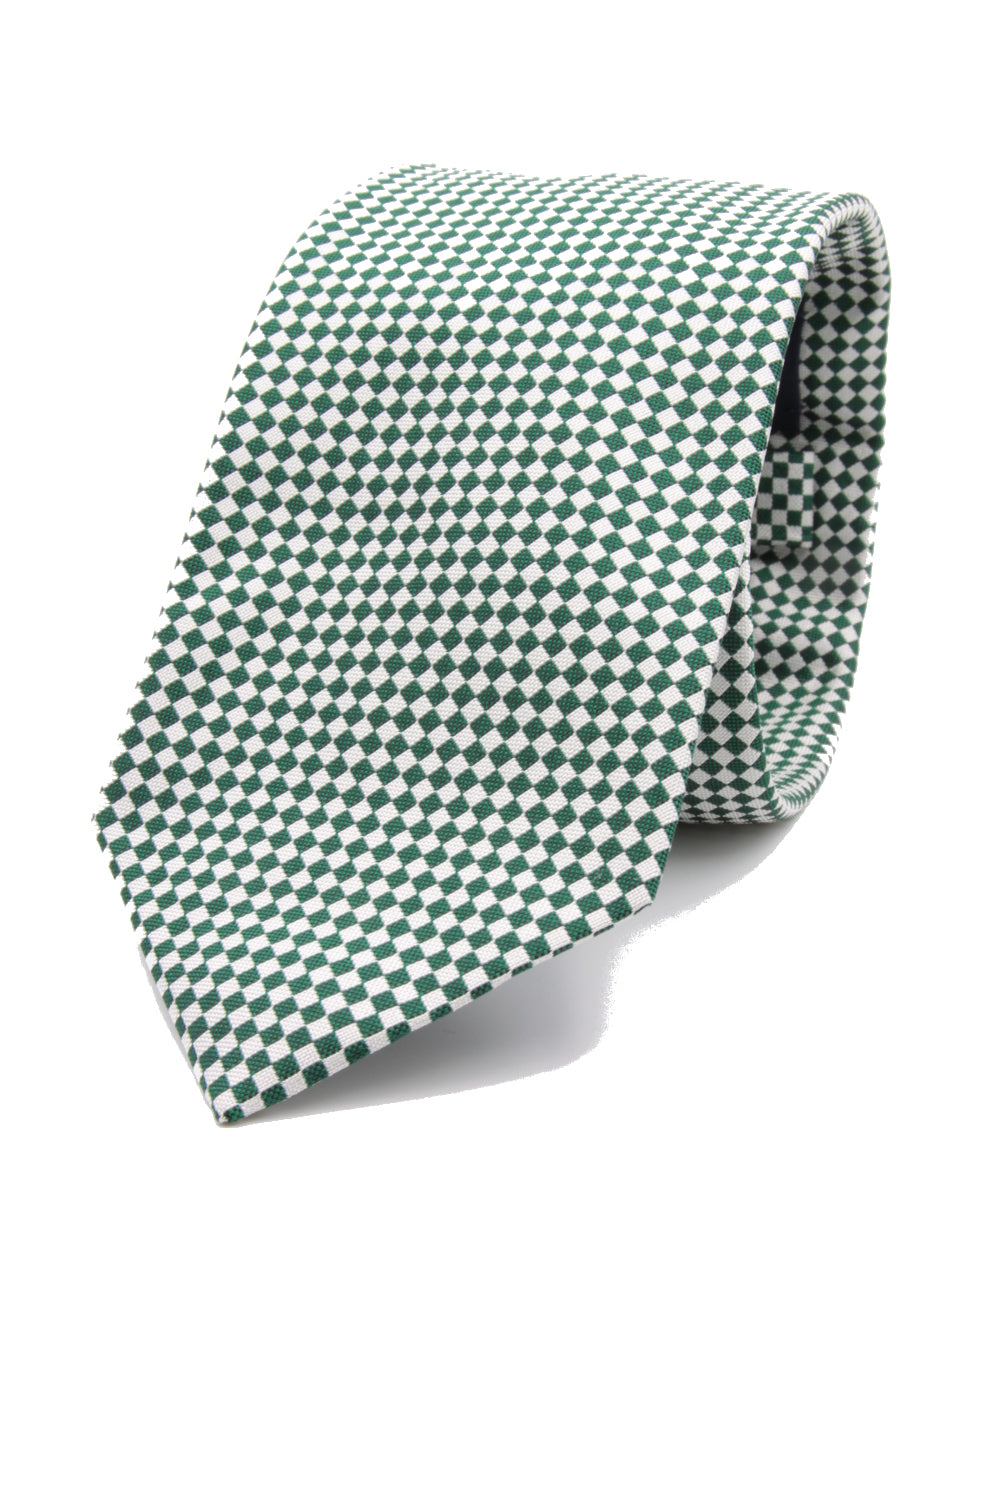 drake's Emeral green and white optical tie